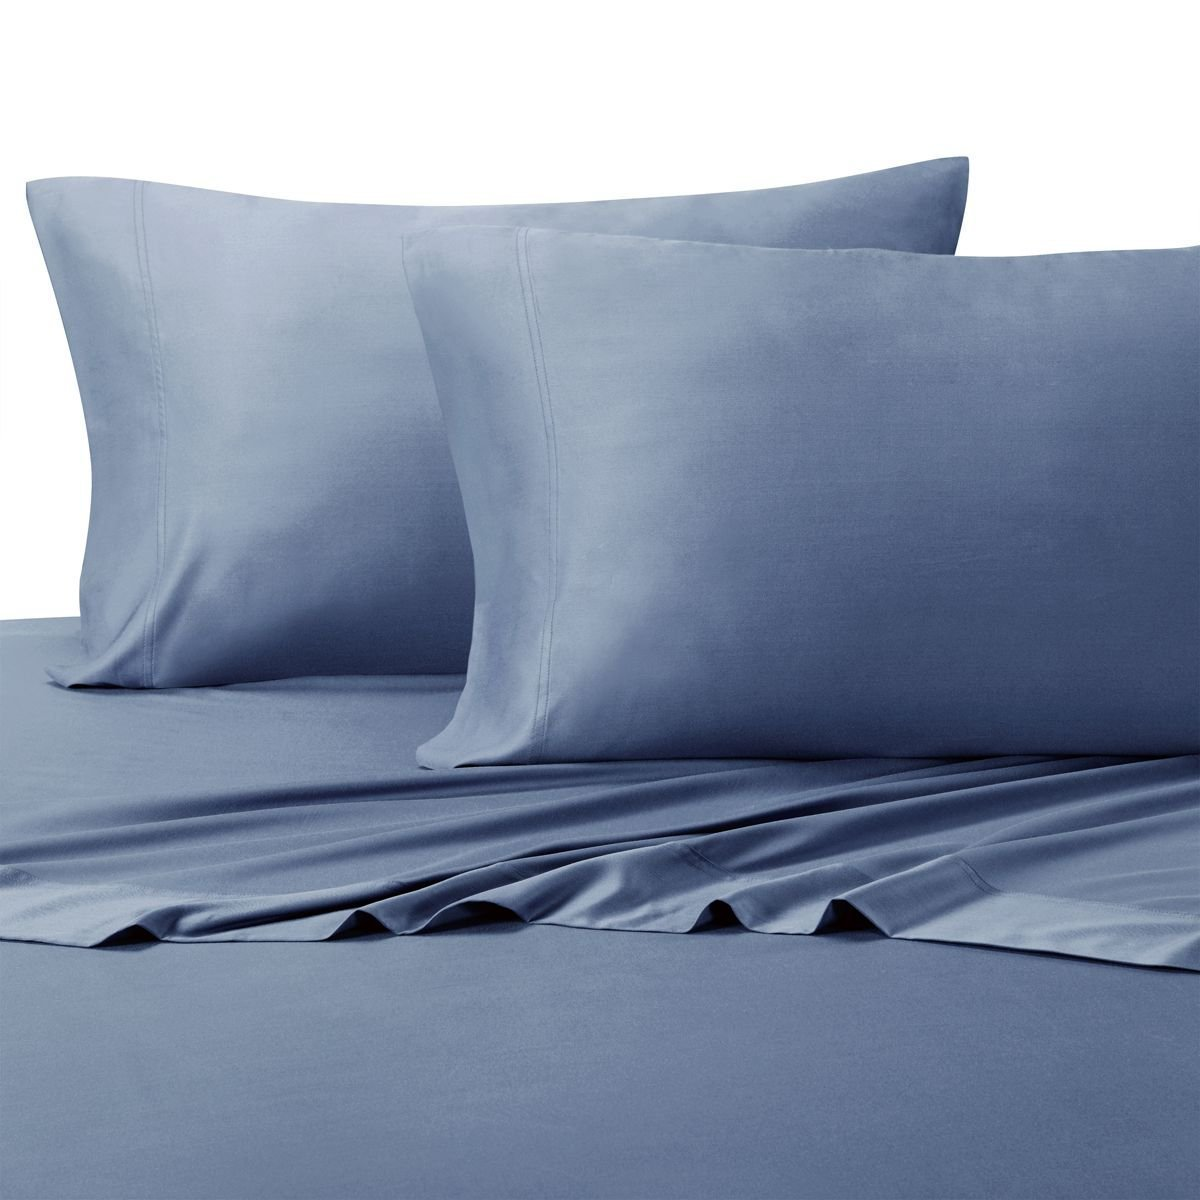 Top-Split-California-King: Adjustable Cal King Bed Sheets 4PC Solid Periwinkle 100% Cotton 600-Thread-Count, Deep Pocket